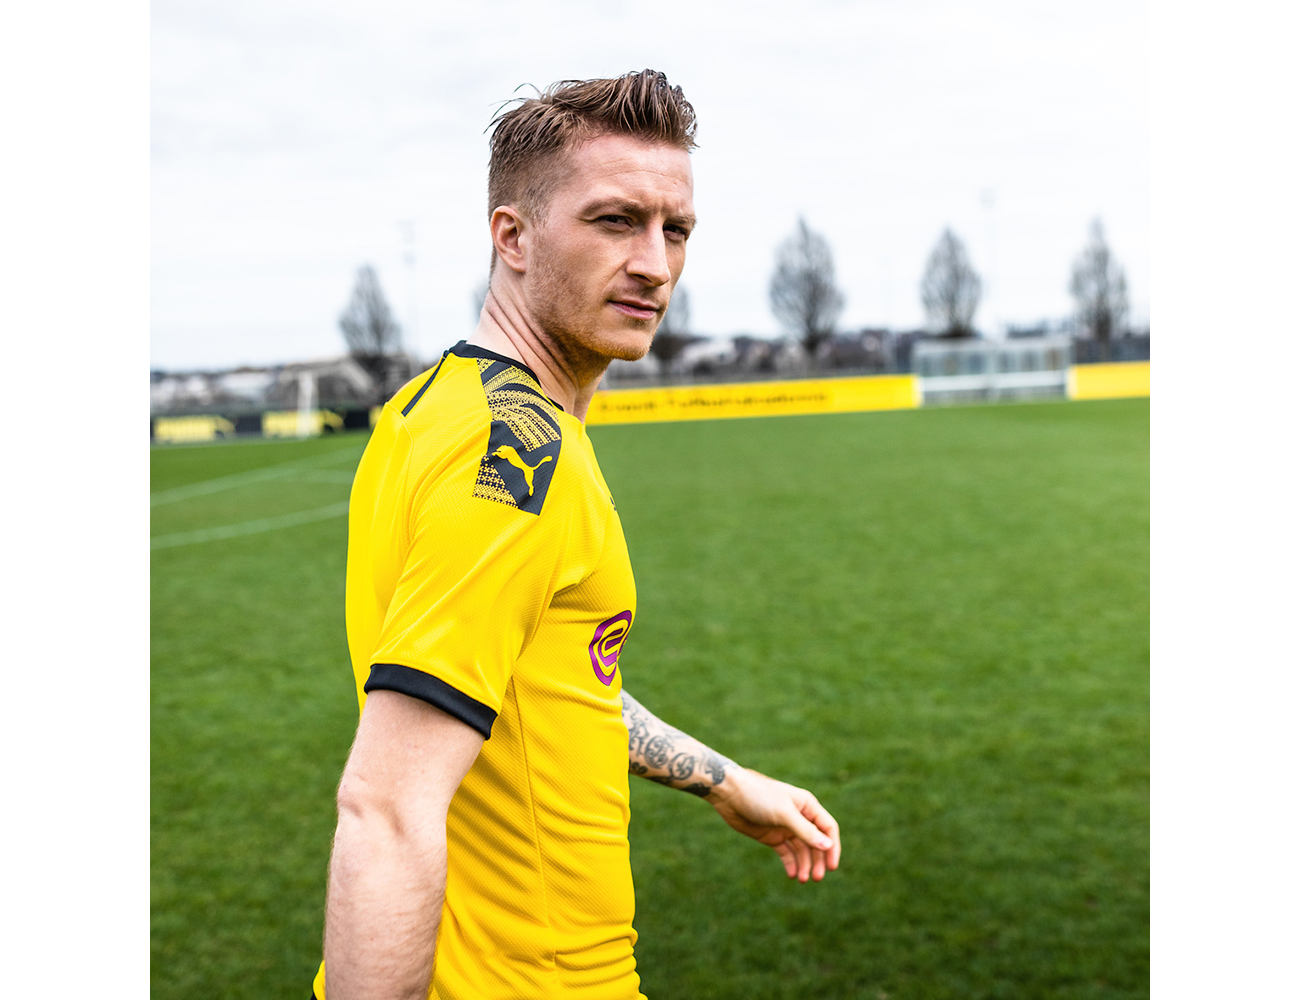 PUMA BVB 201920 Home Kit_02